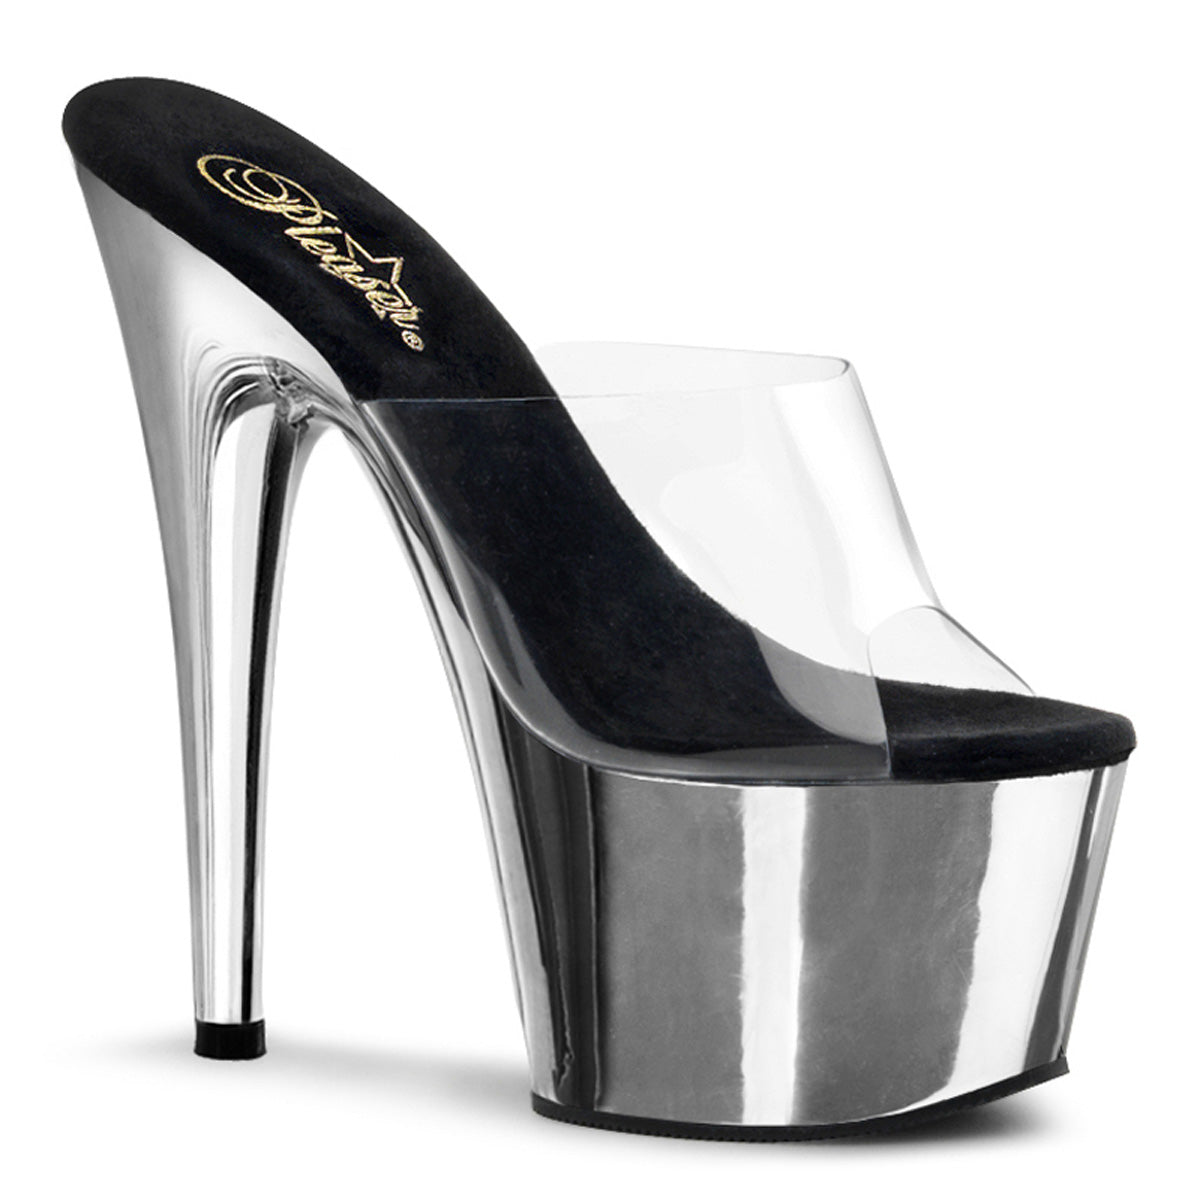 "7"" Heel, 2 3/4"" Chrome Plated PF Slide"